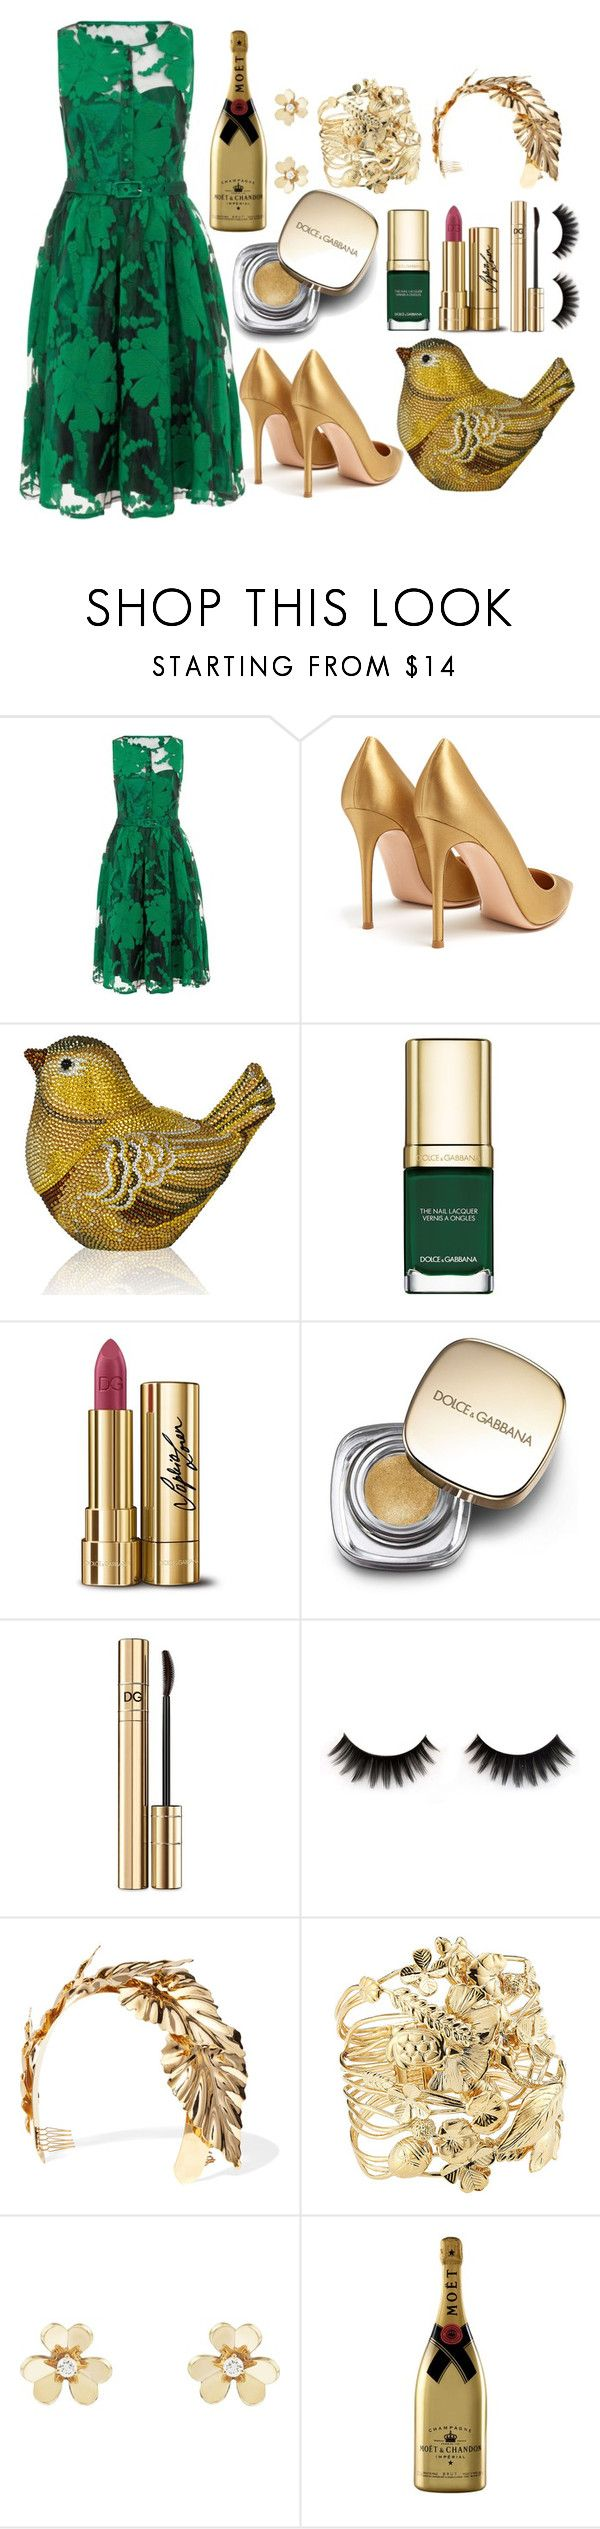 """""""Romance & Waltz"""" by pulseofthematter ❤ liked on Polyvore featuring Gianvito Rossi, Judith Leiber, Dolce&Gabbana, Lelet NY, Aurélie Bidermann and Van Cleef & Arpels"""